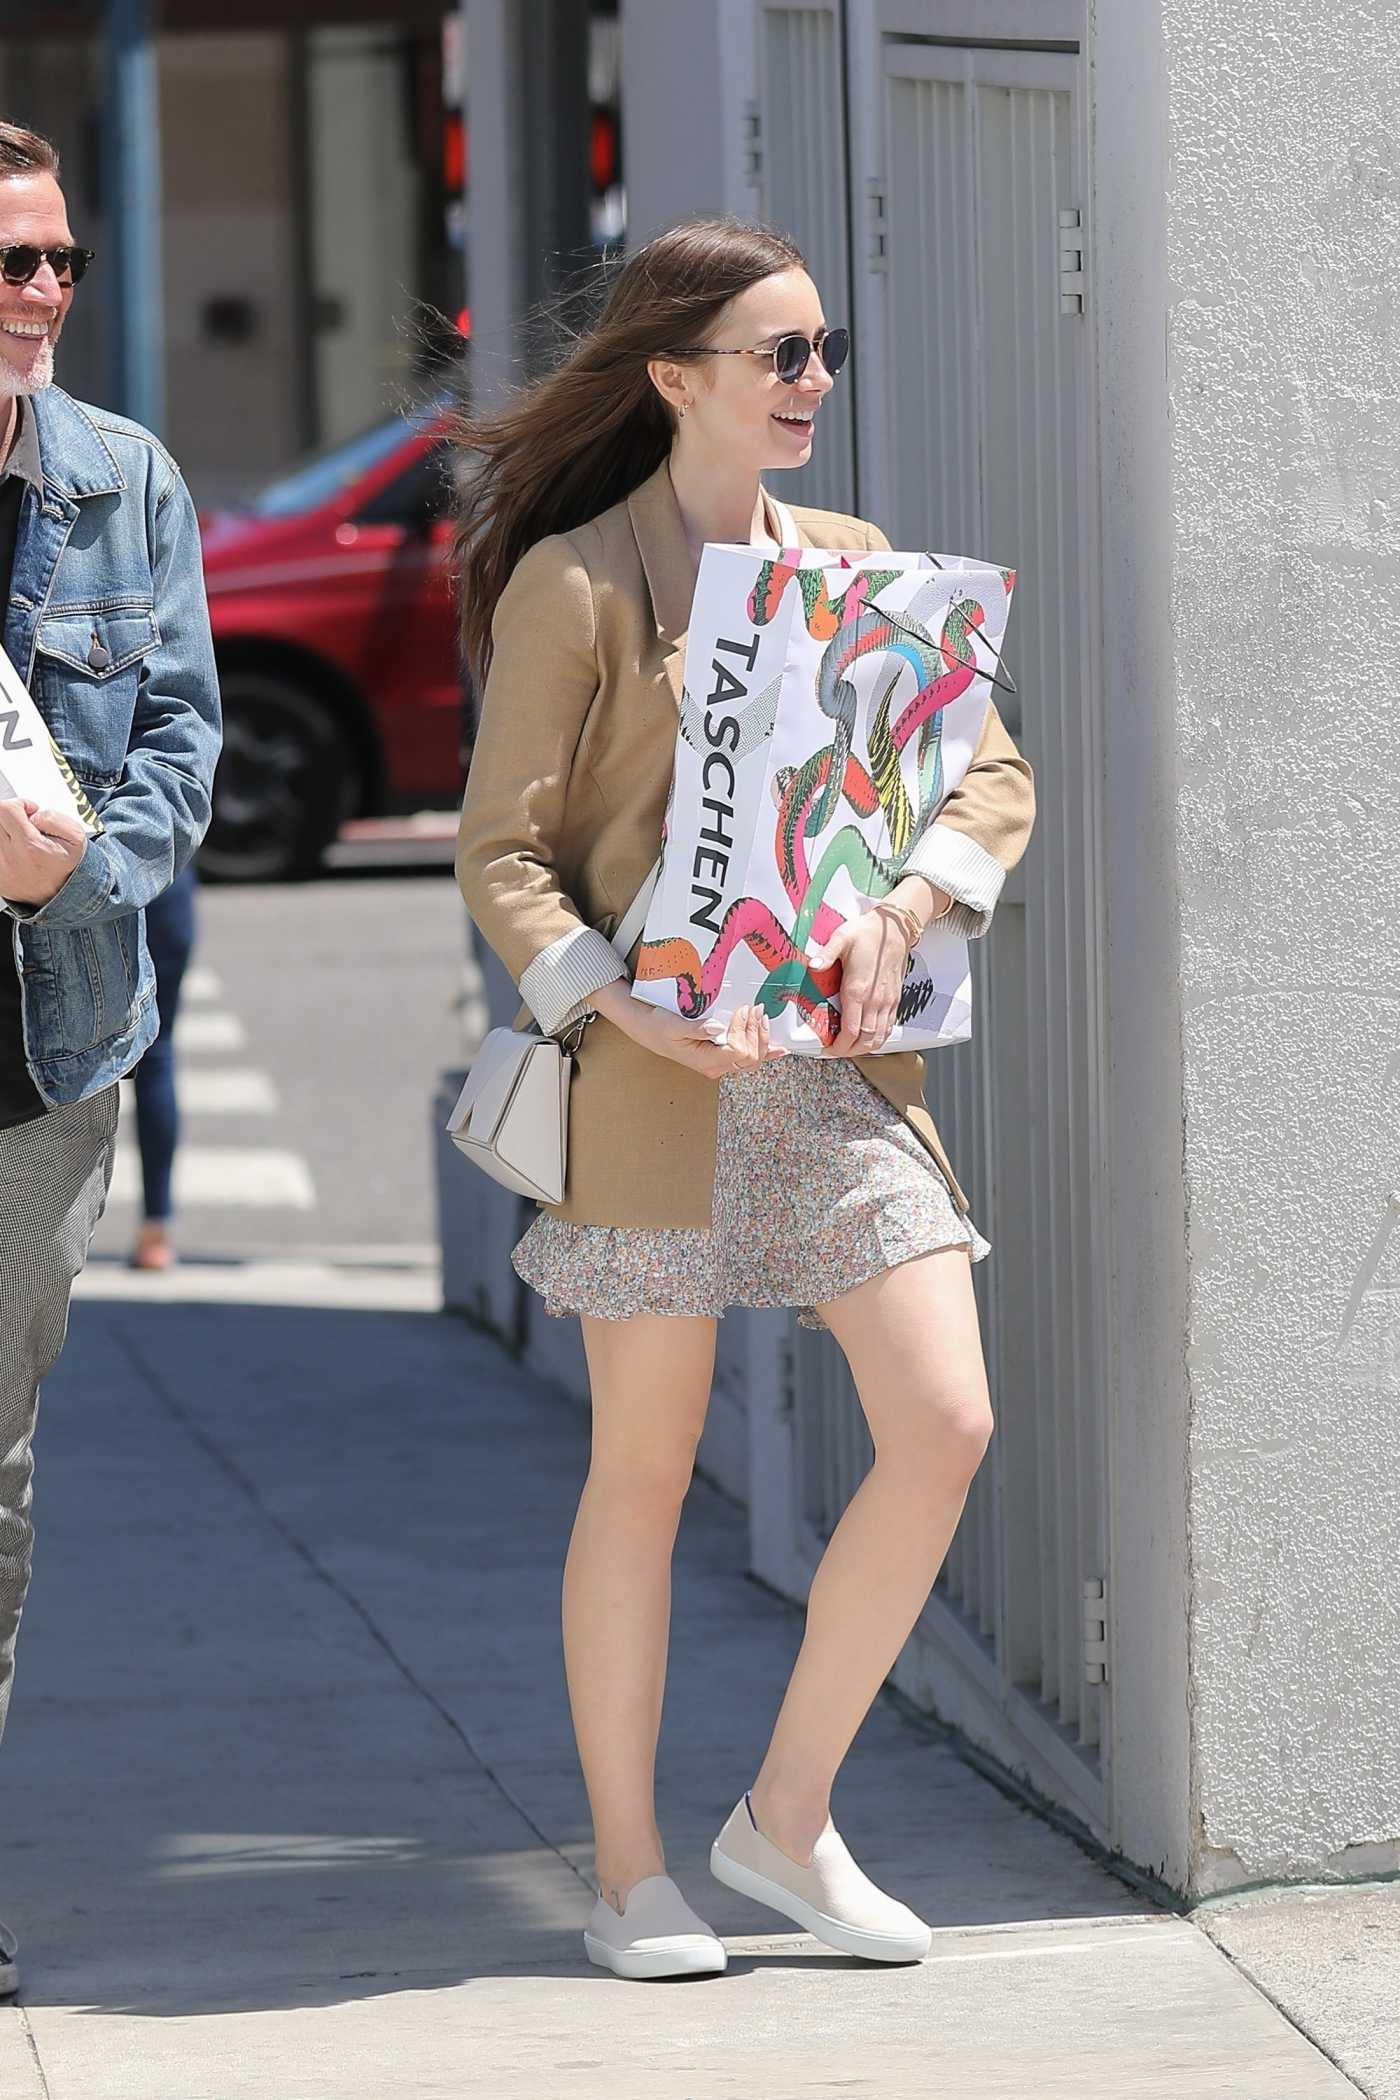 Lily Collins in a Beige Blazer Goes Shopping with a Friend in Beverly Hills 05/17/2019